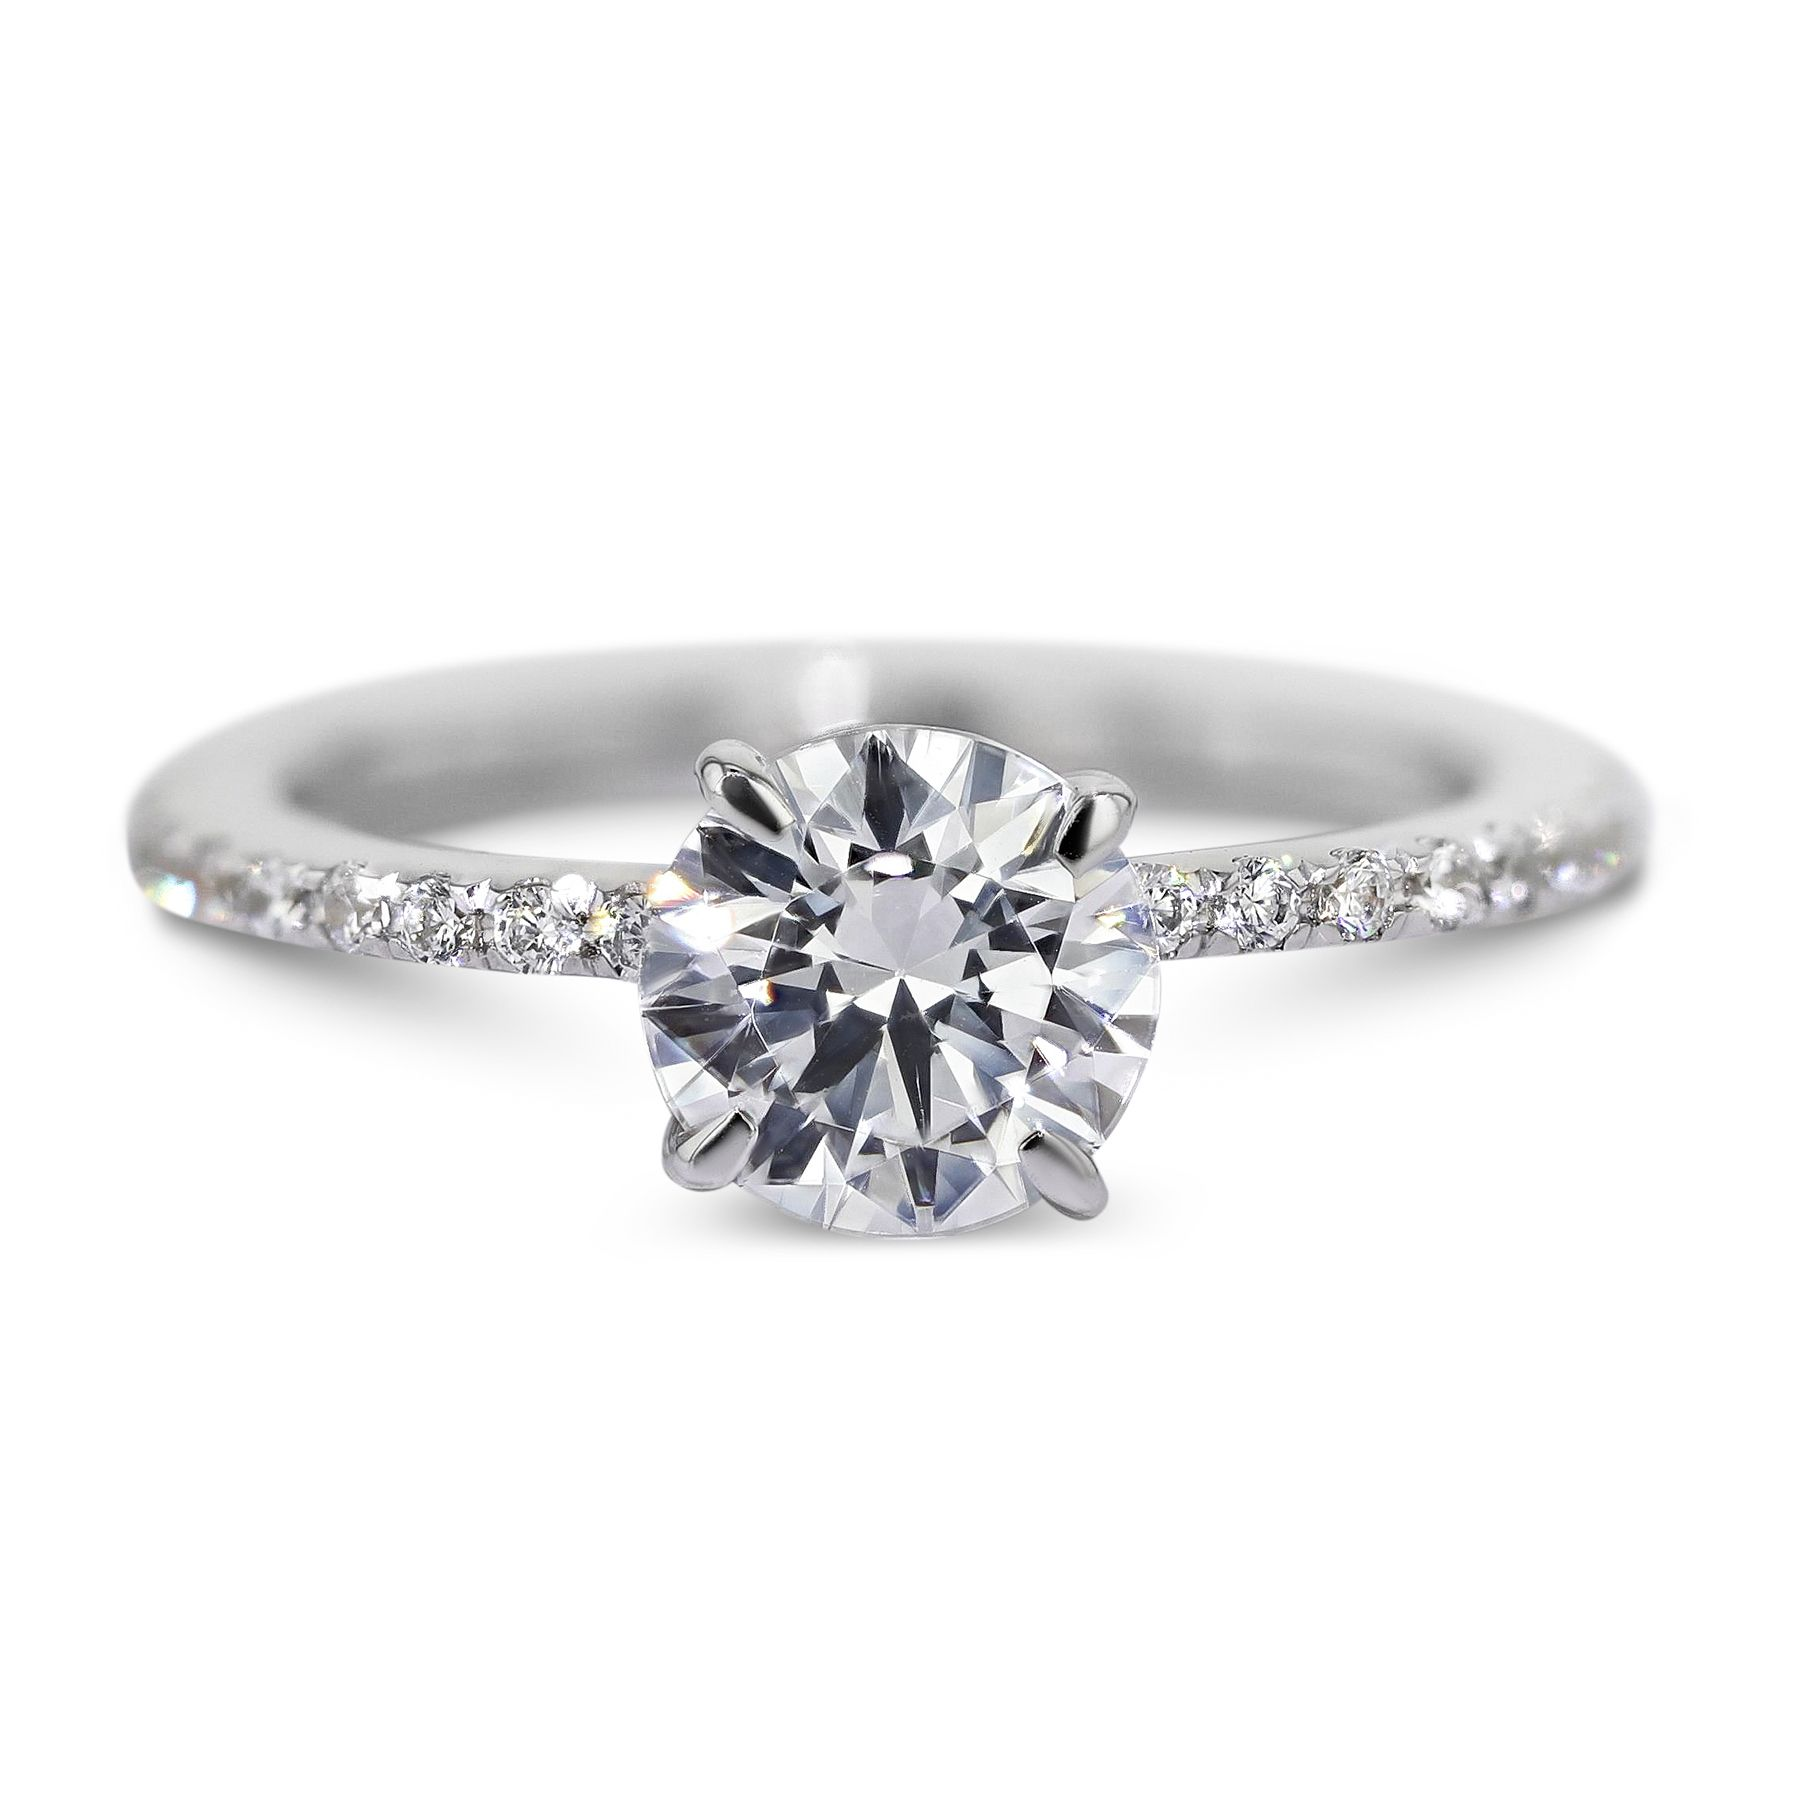 Pave set diamonds adorn the sides of this engagement ring A 1 59